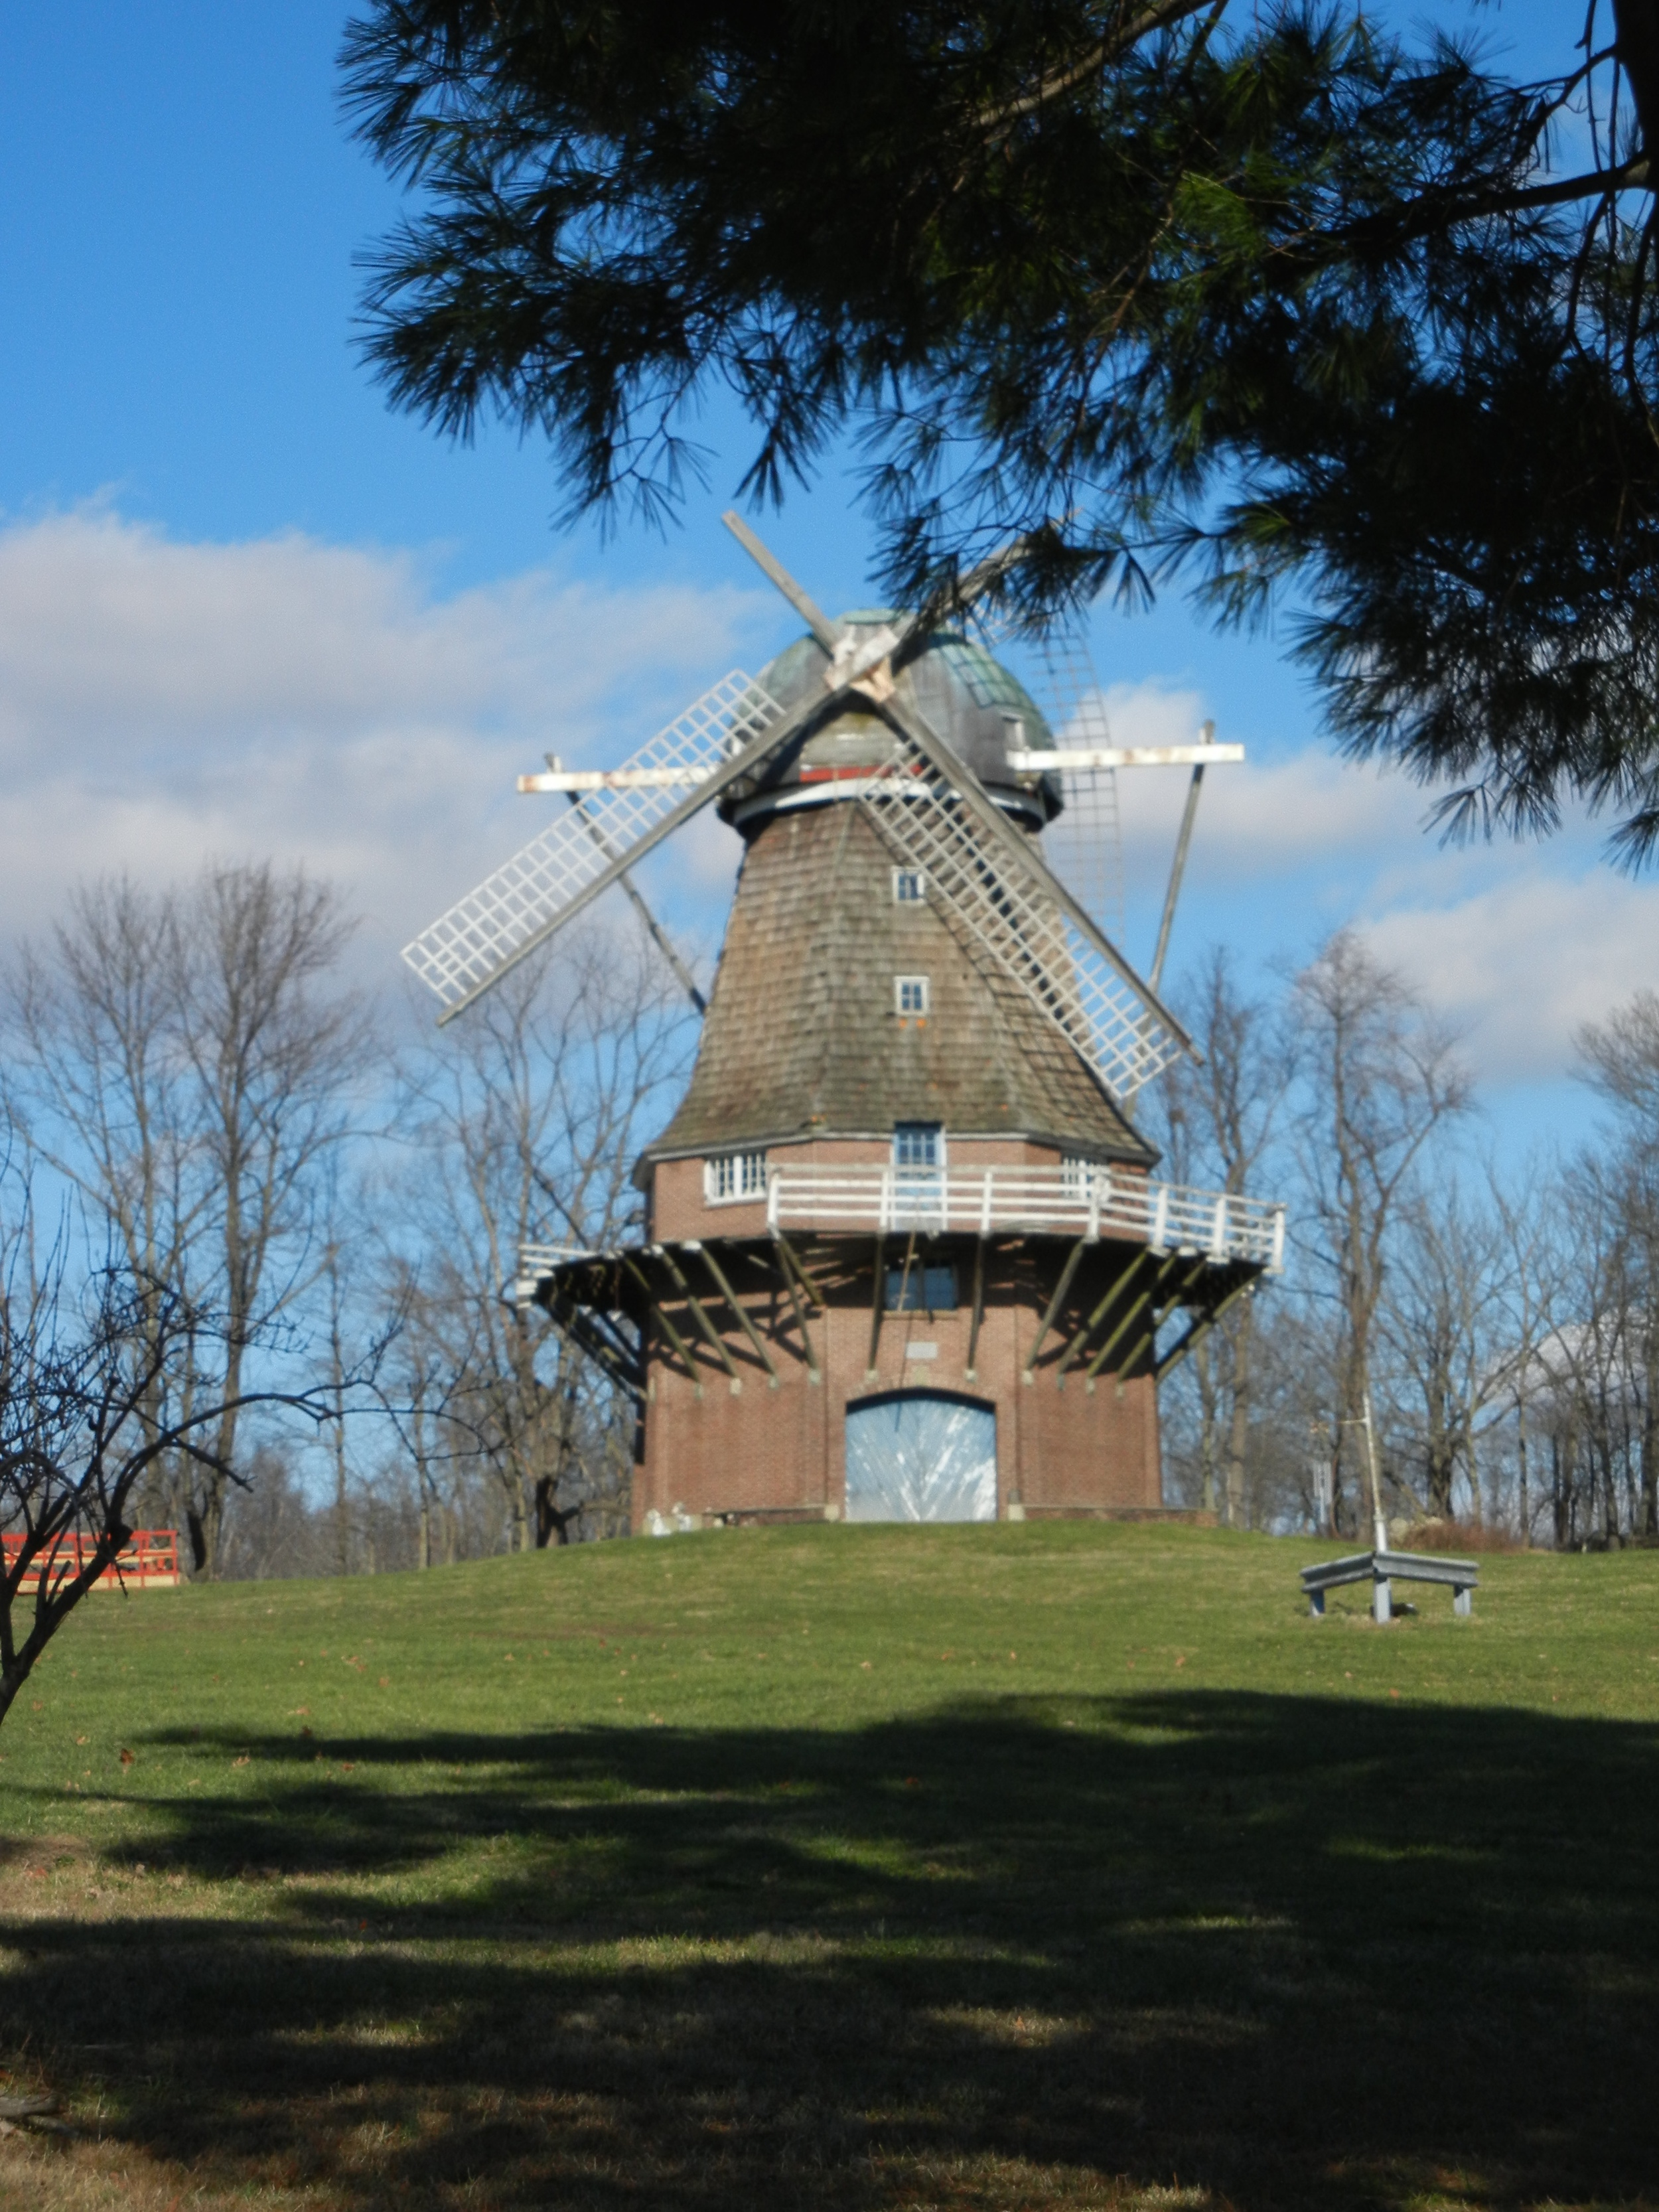 According to several sources, the windmill was damaged in 2007 and has been neglected since.